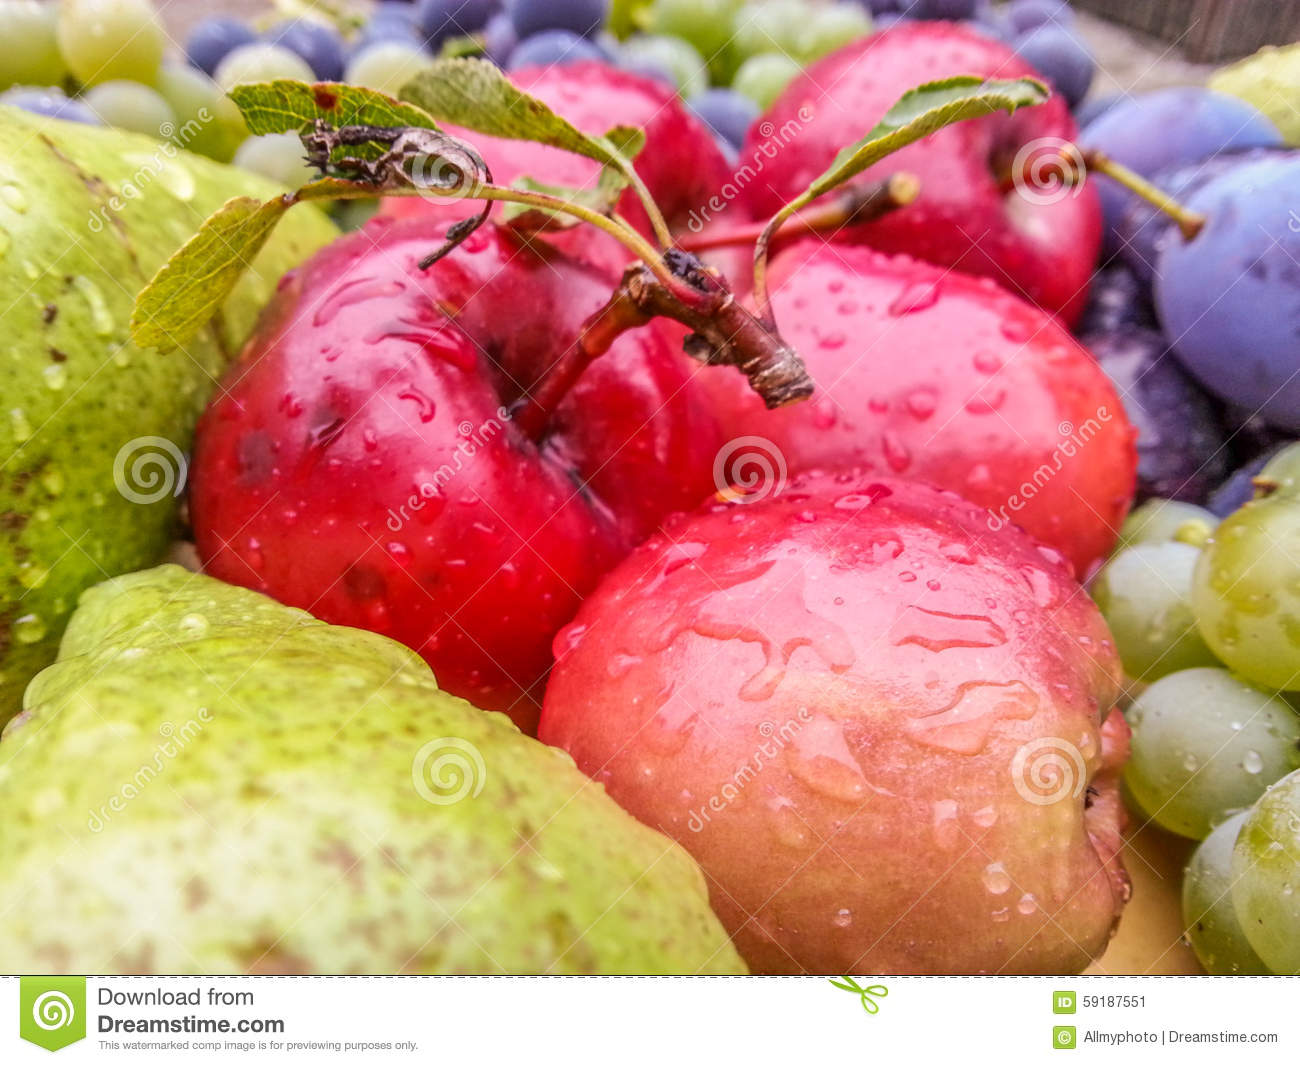 details on fruits Learn how you can add fruits and veggies to your meals and snacks  fruits and  vegetables help prevent diseases and have lots of fiber to keep you feeling full.